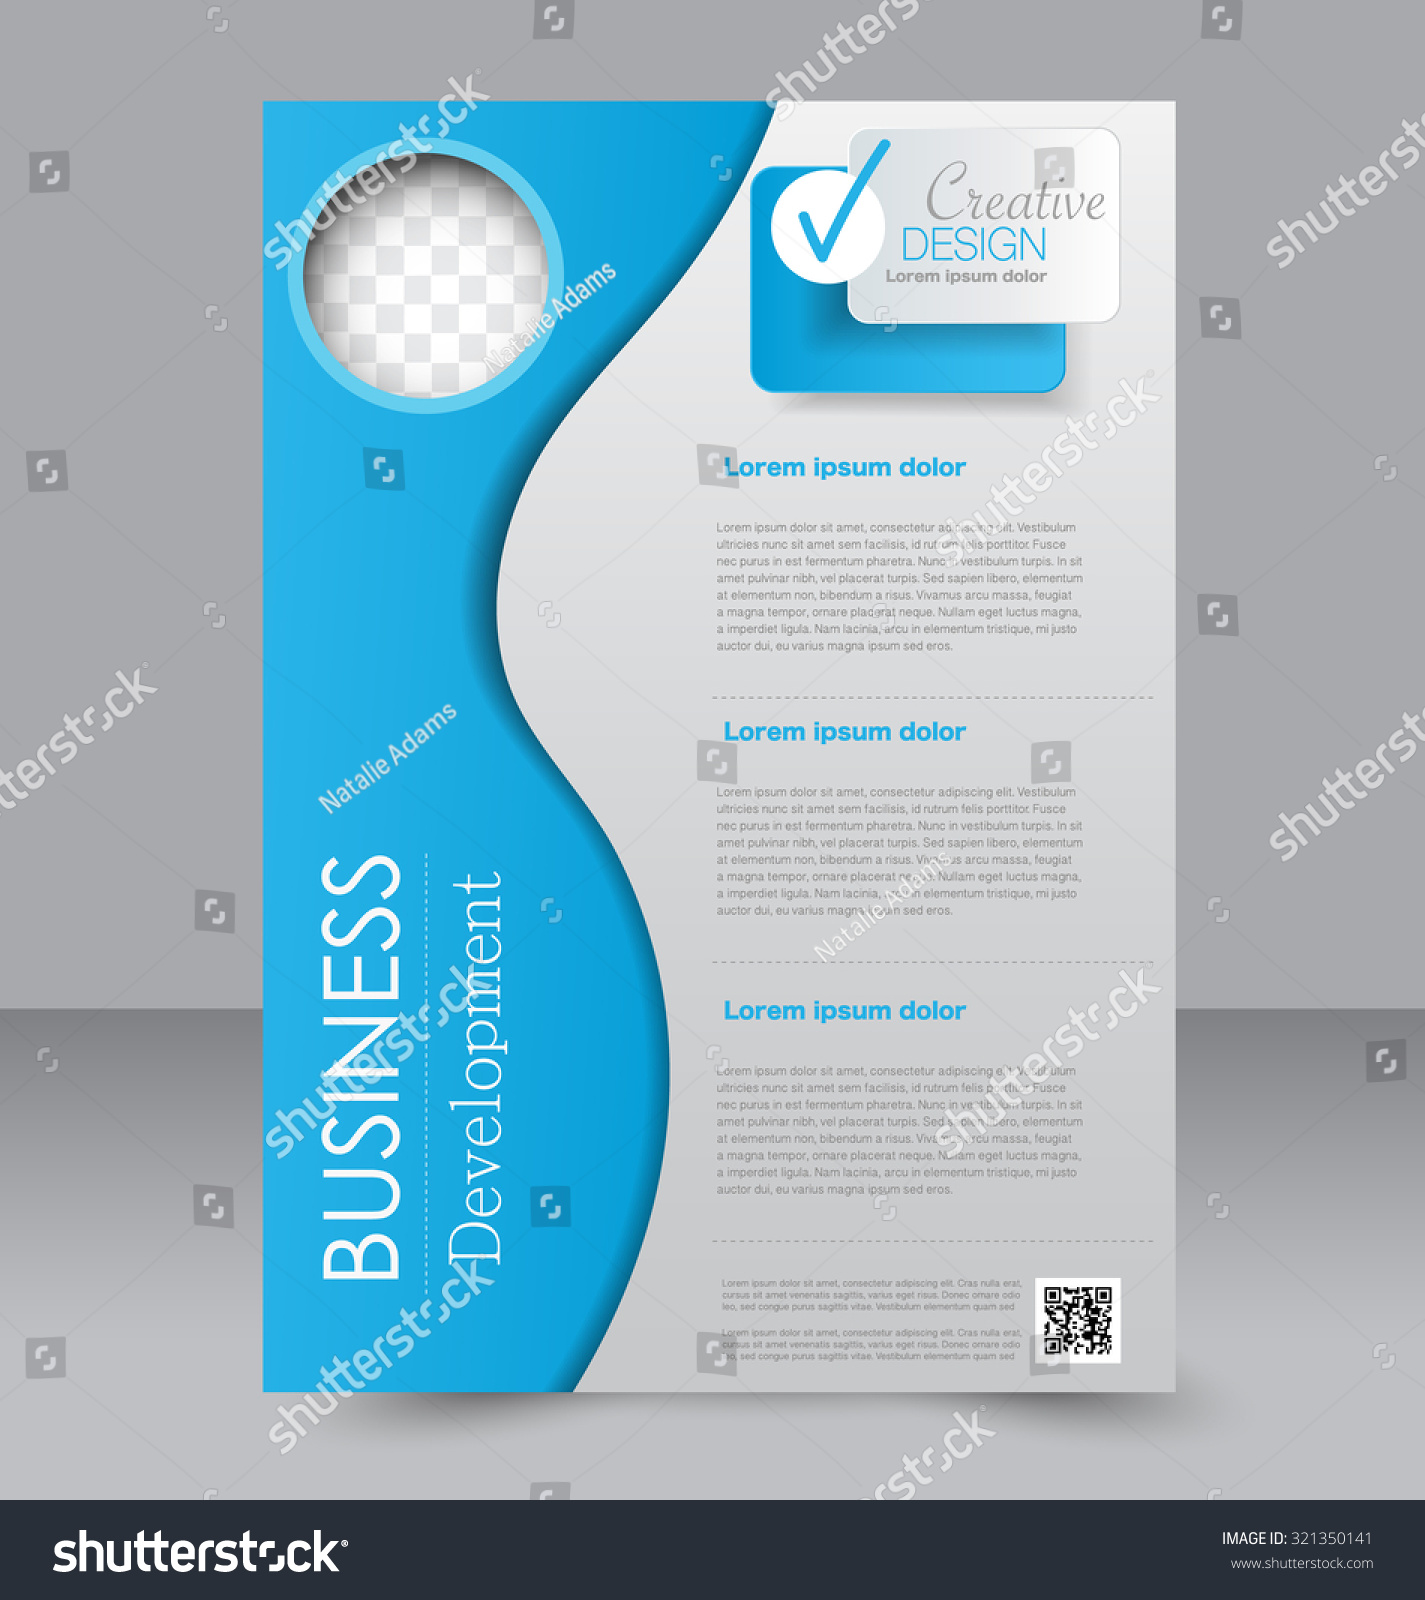 Brochure Template Business Flyer Editable A Stock Vector - Editable brochure templates